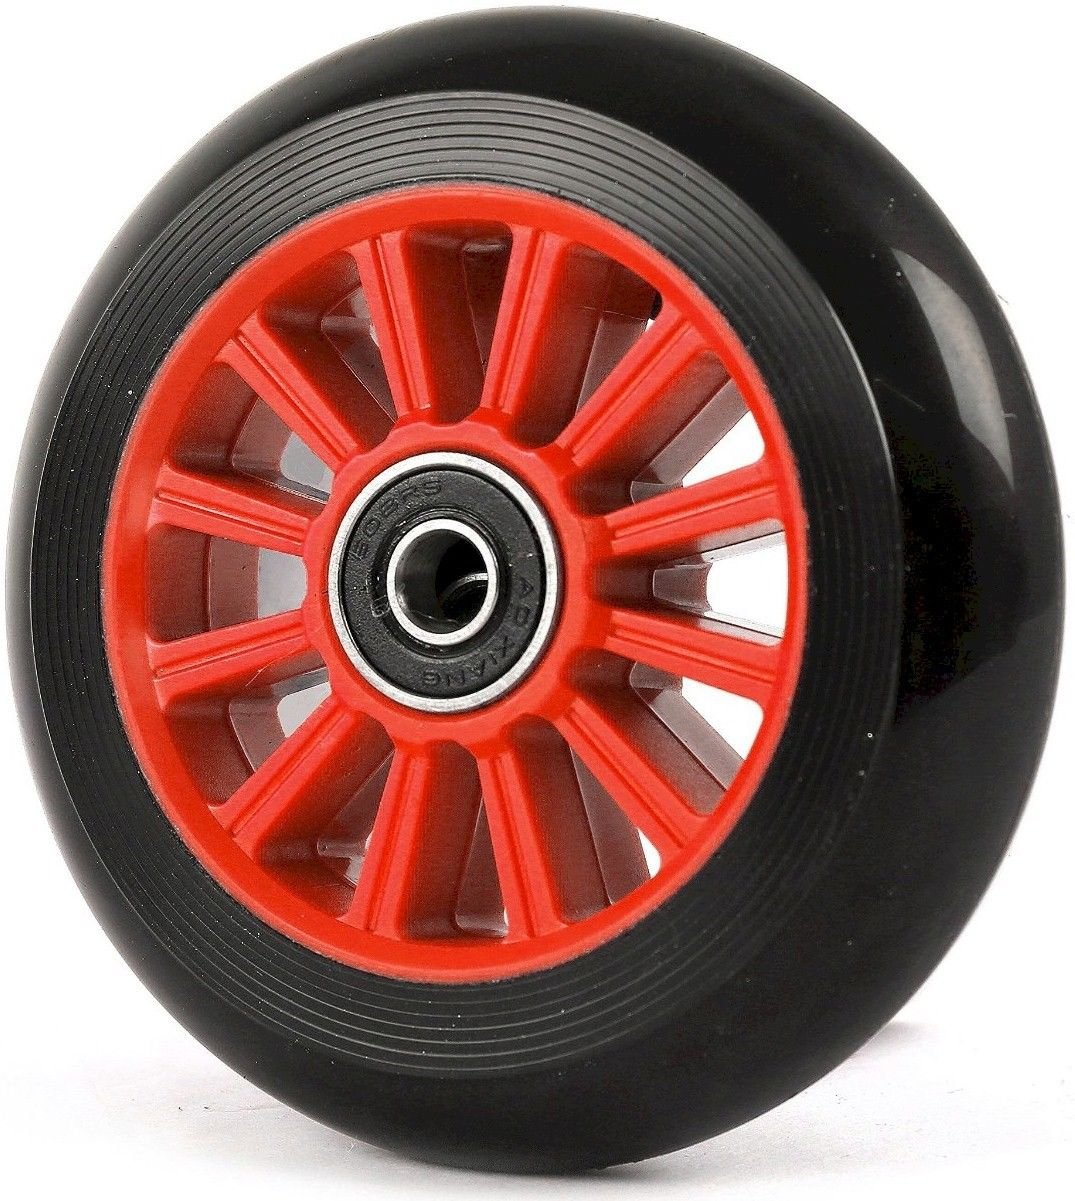 100mm WHEELS FOR STUNT SCOOTER + ABEC9 bearings fits JD Bug Razor Two Bare Feet TBF